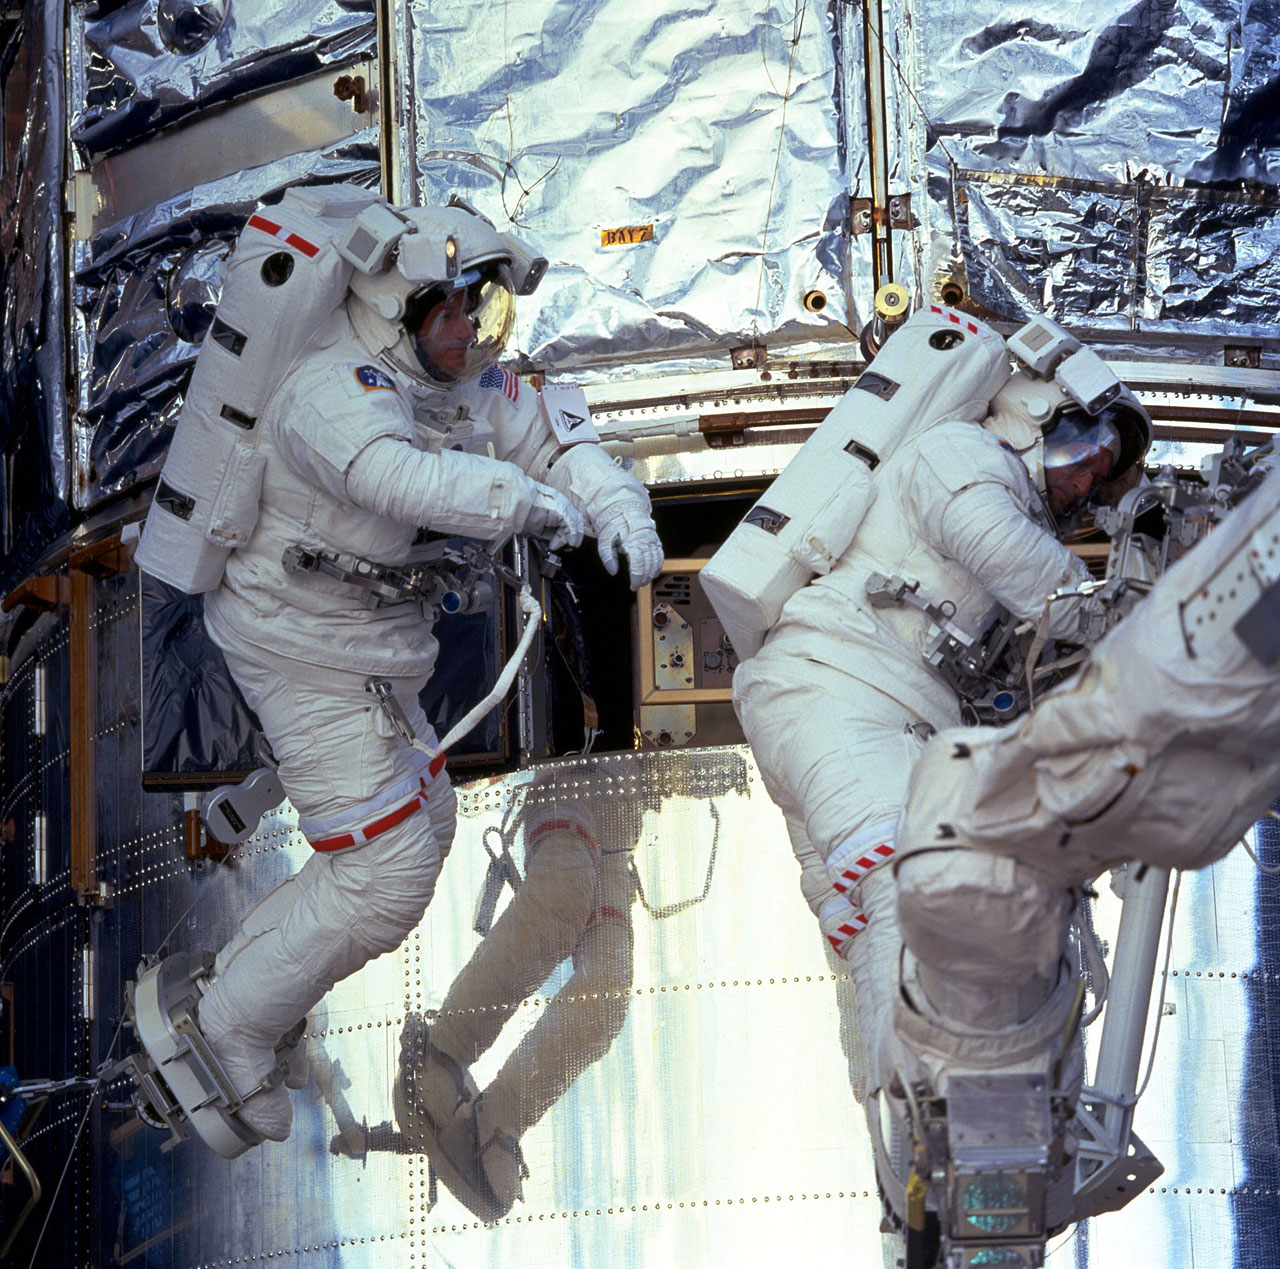 Sm3a Foale And Nicollier On Spacewalk Esa Hubble